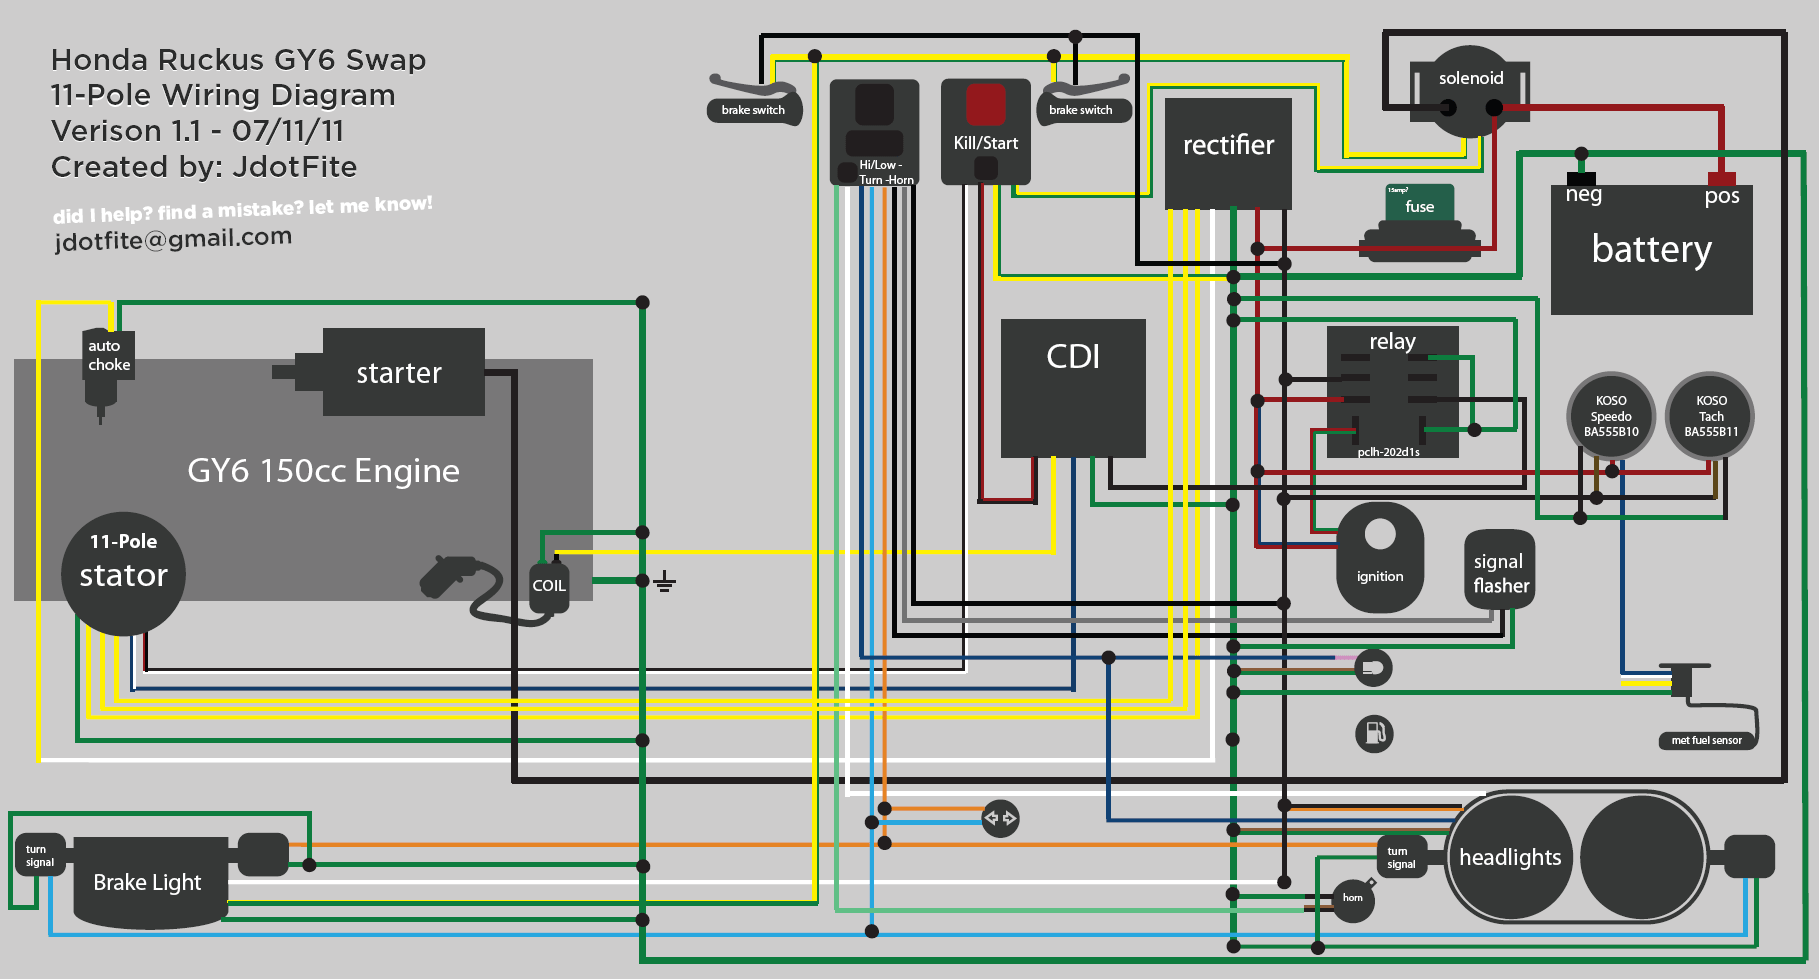 Izip 200 Wiring Diagram In Addition Razor Electric Scooter